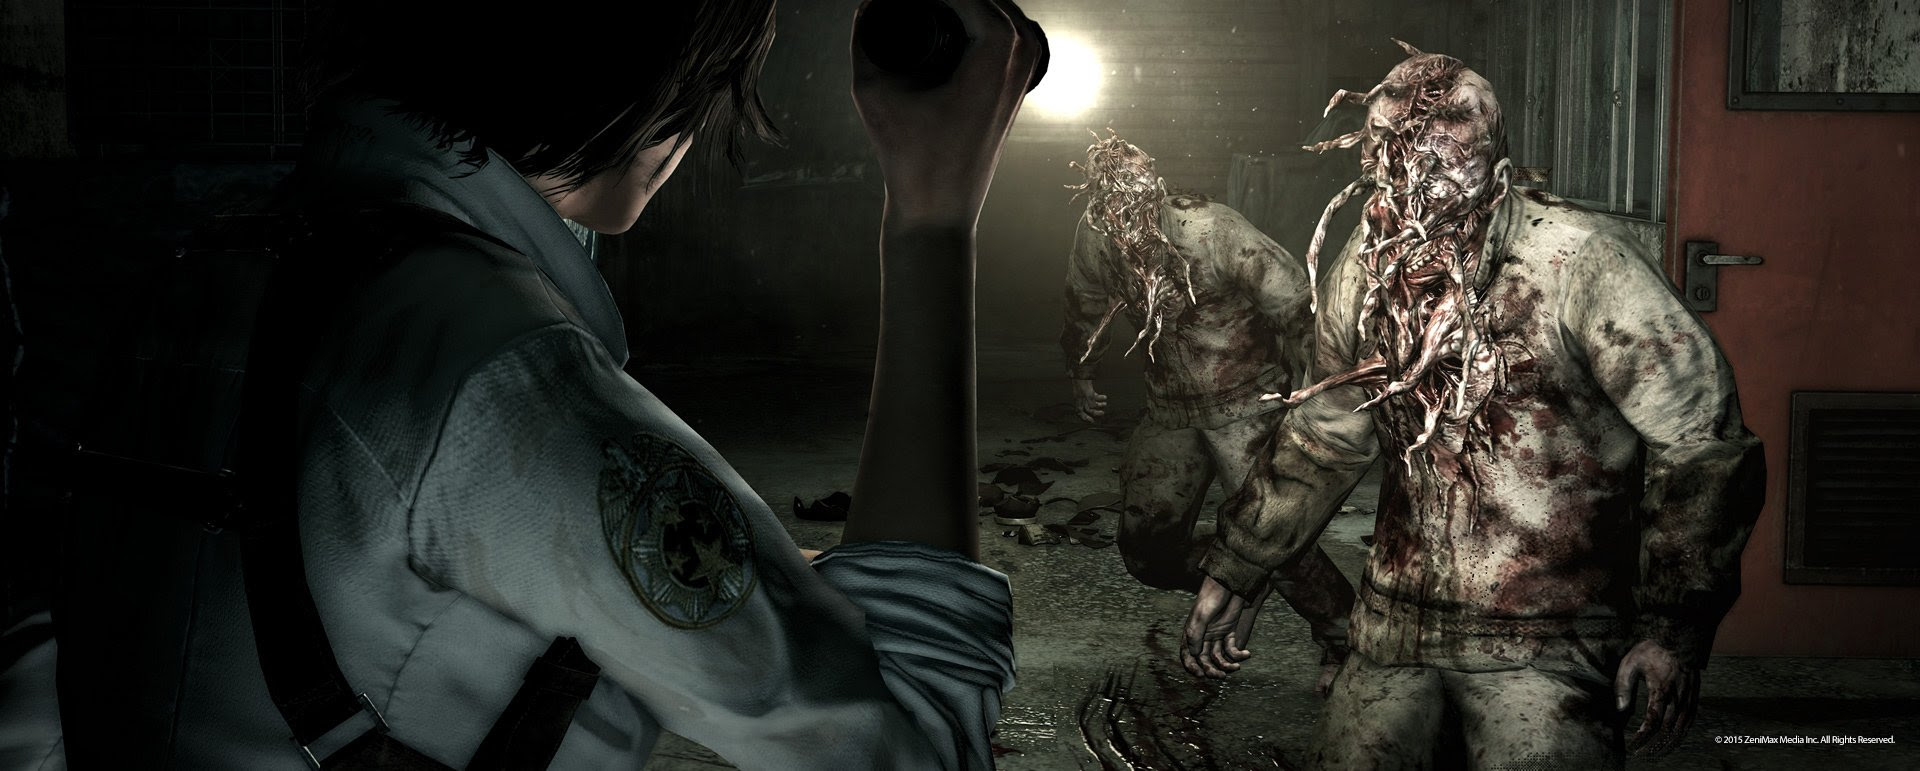 The Evil Within 2 spotted in online ad screenshot